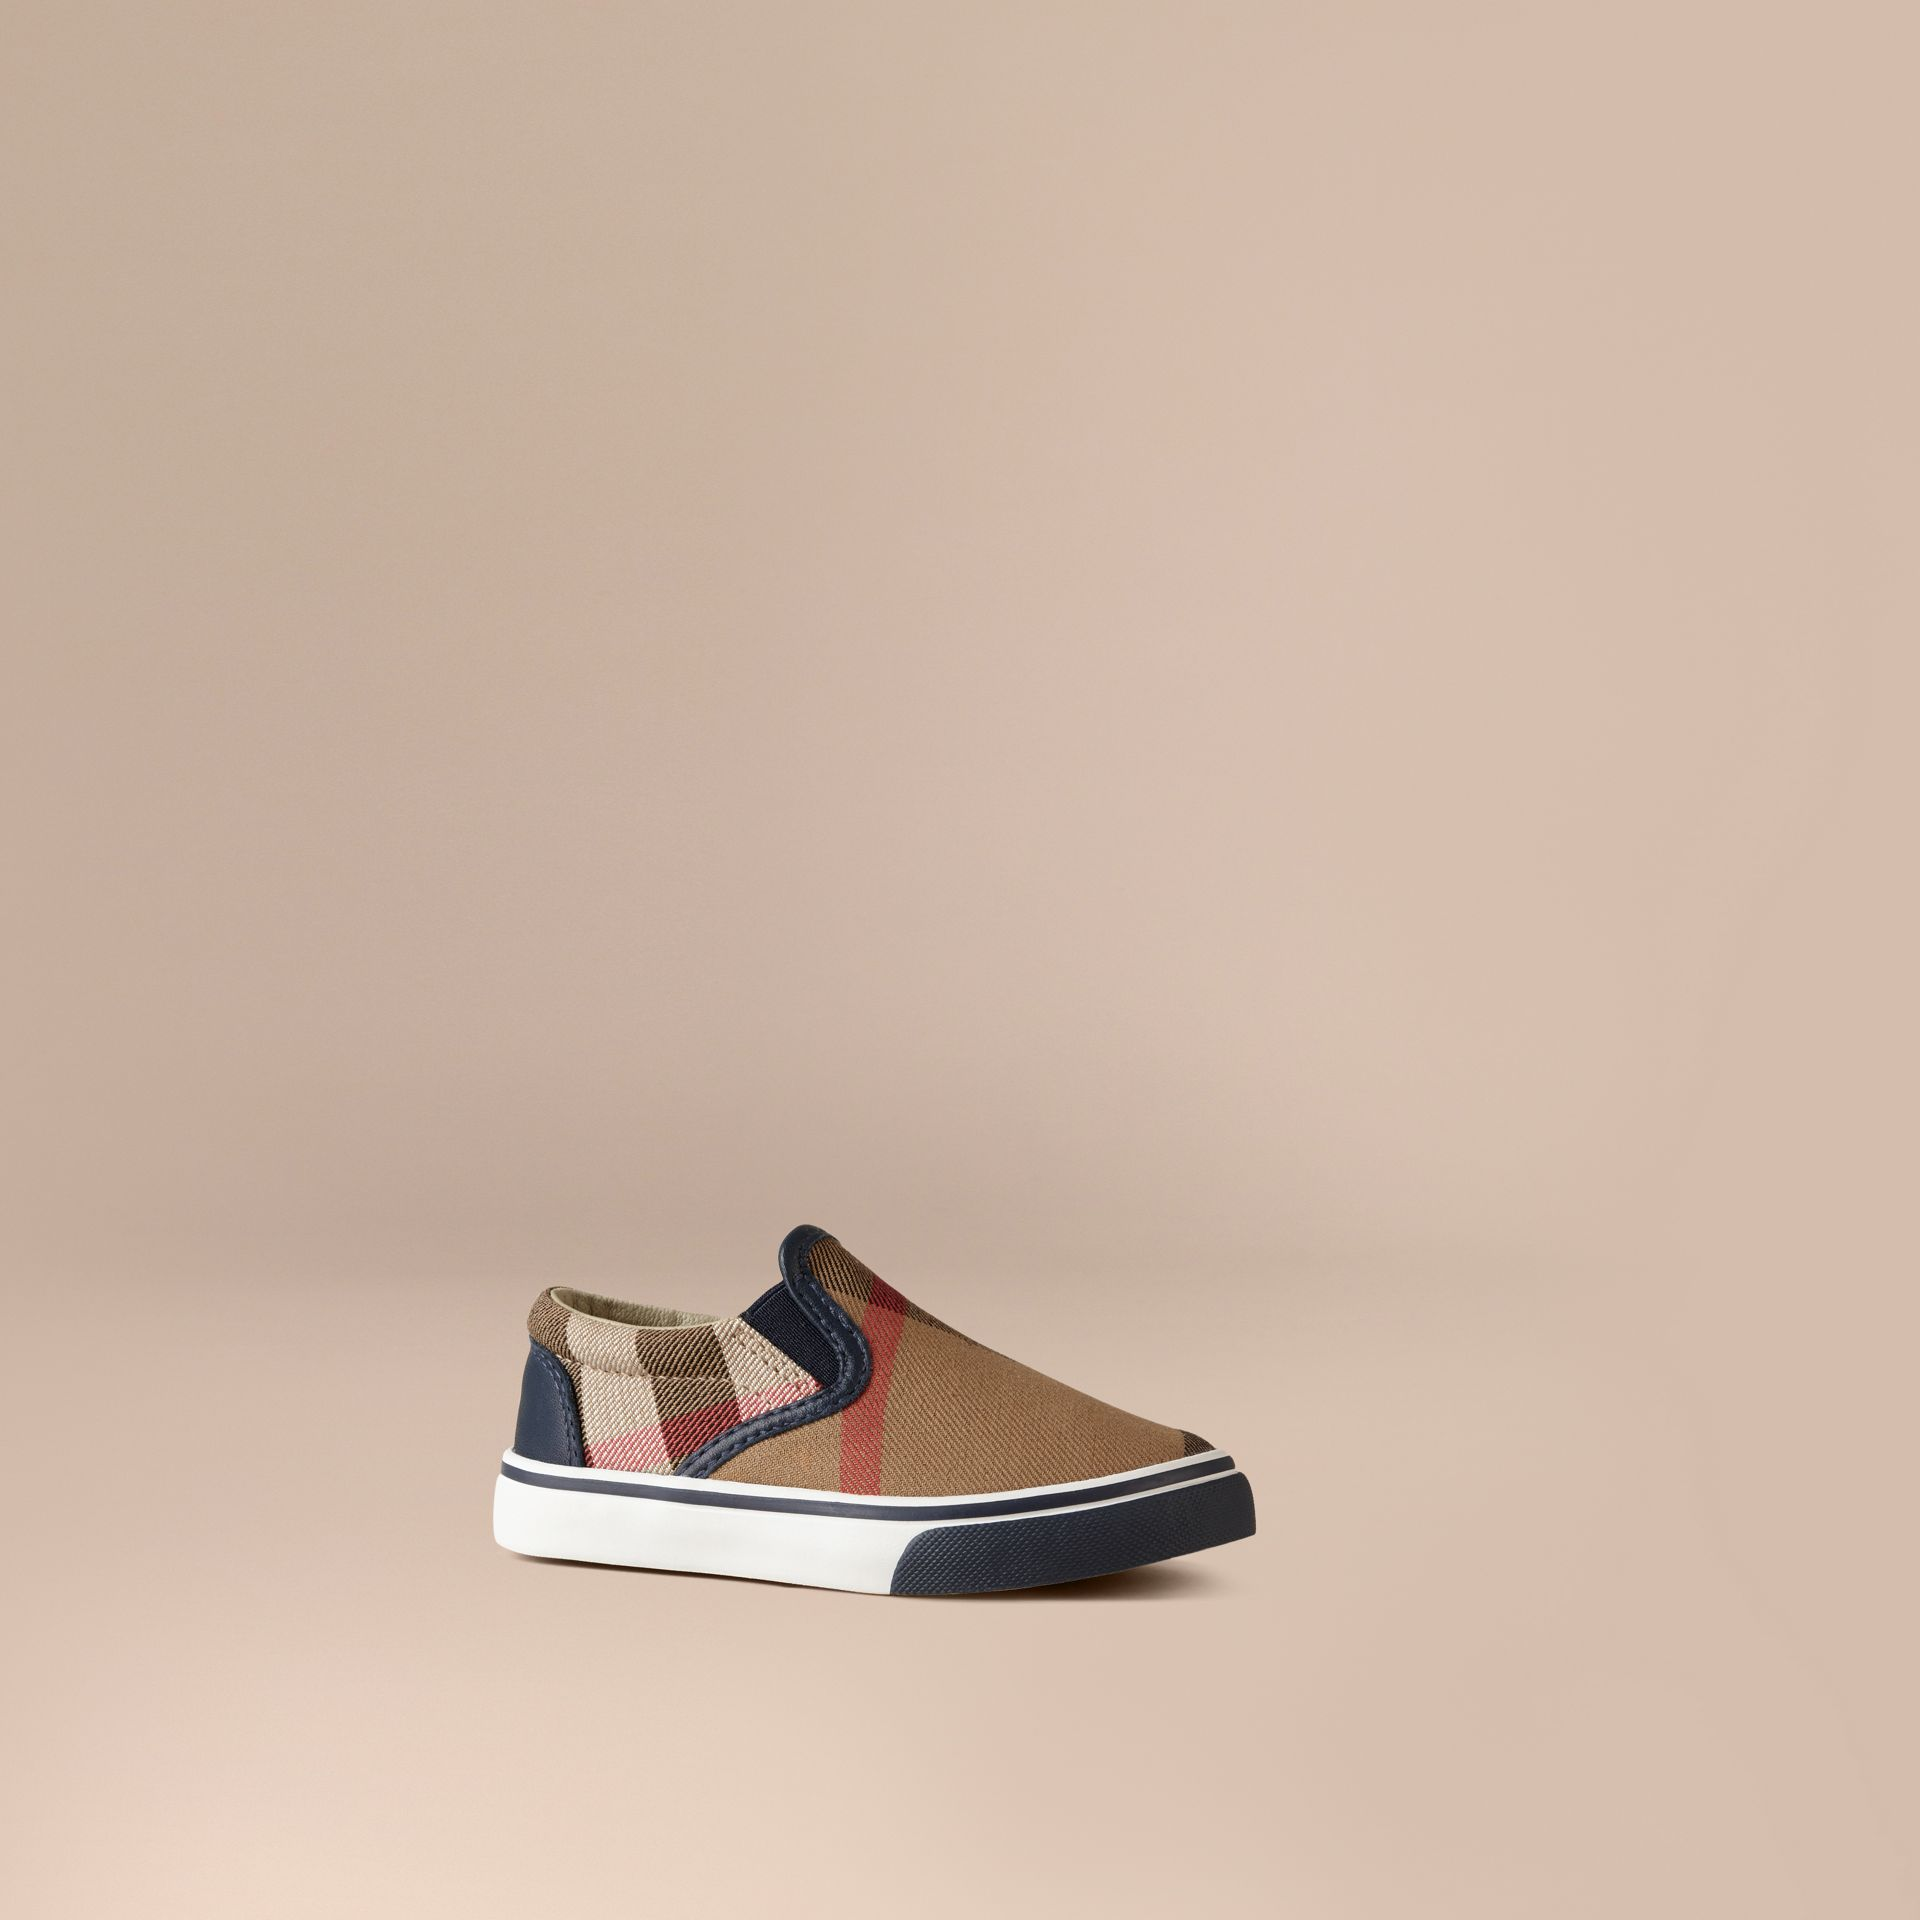 House Check Cotton Slip-On Trainers in Navy | Burberry Hong Kong - gallery image 1